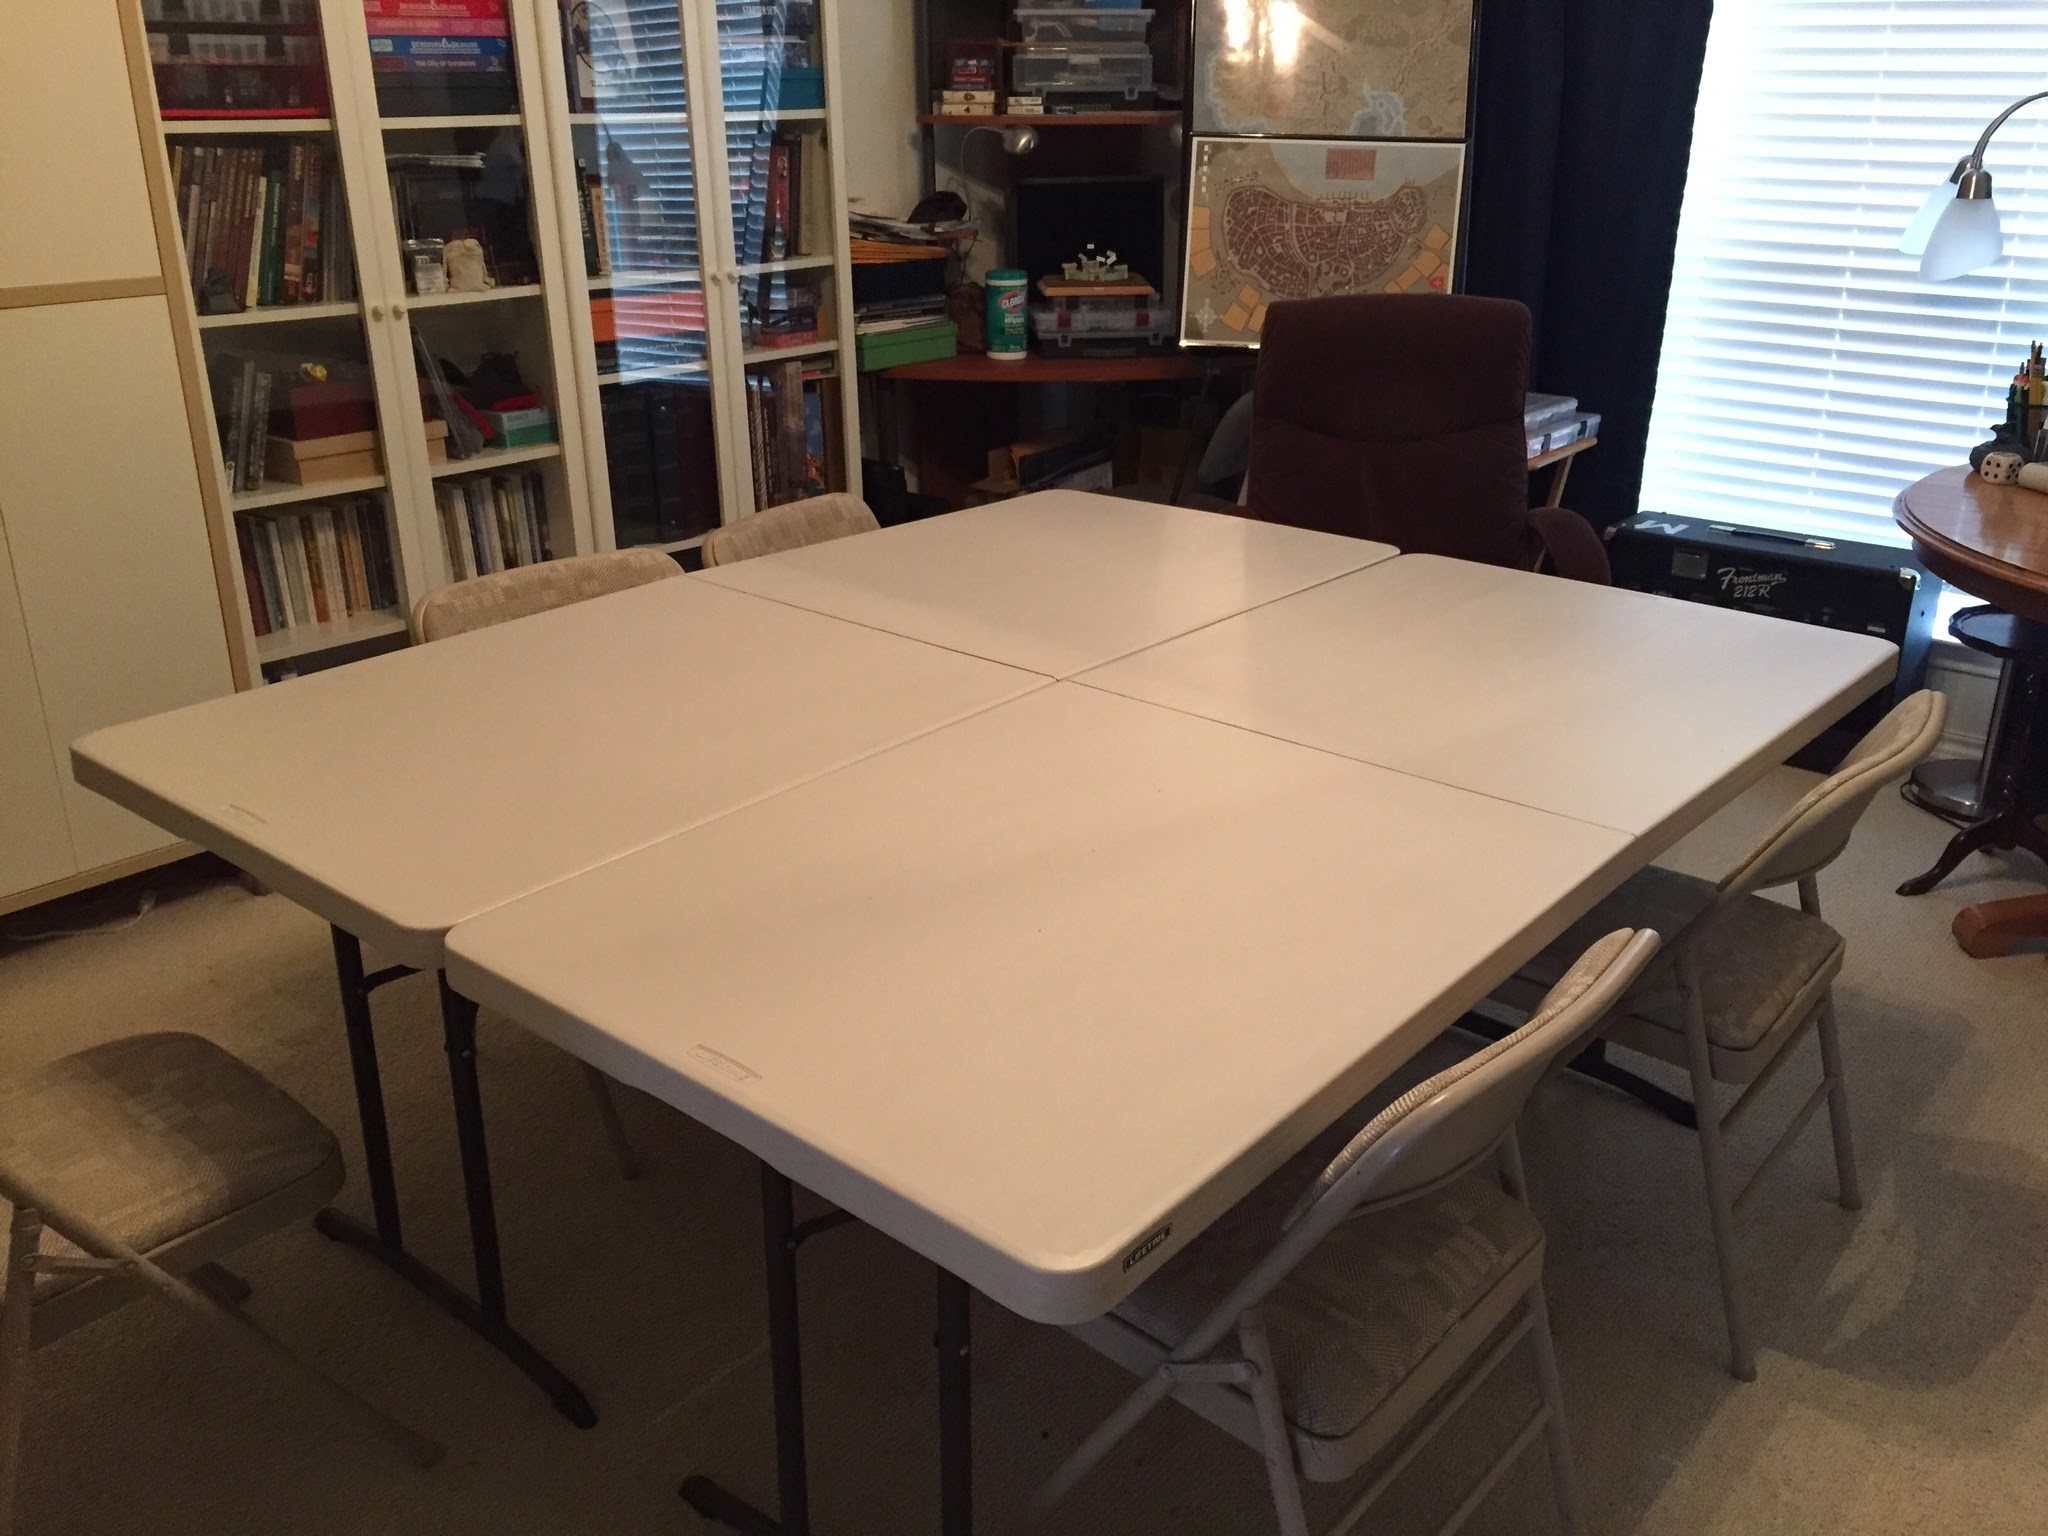 Costco Folding Tables | Costco Round Folding Table | Utility Table Costco